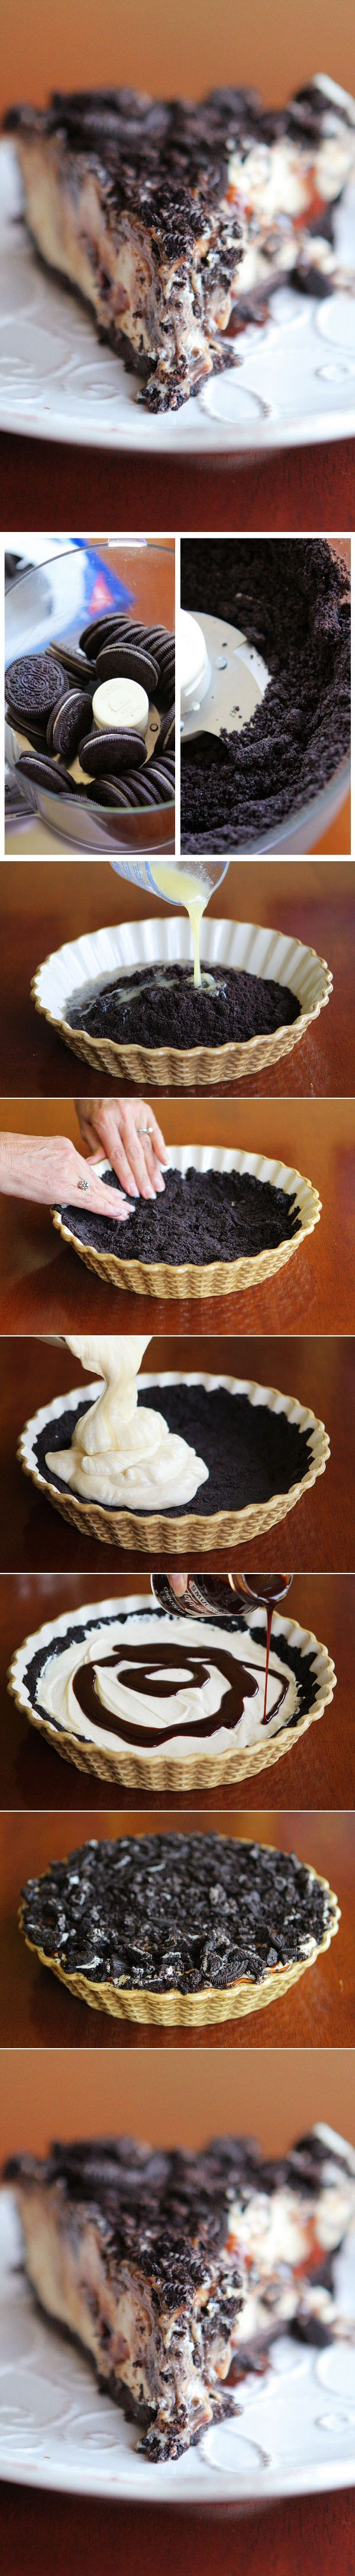 Peanut Butter Oreo Ice Cream Pie